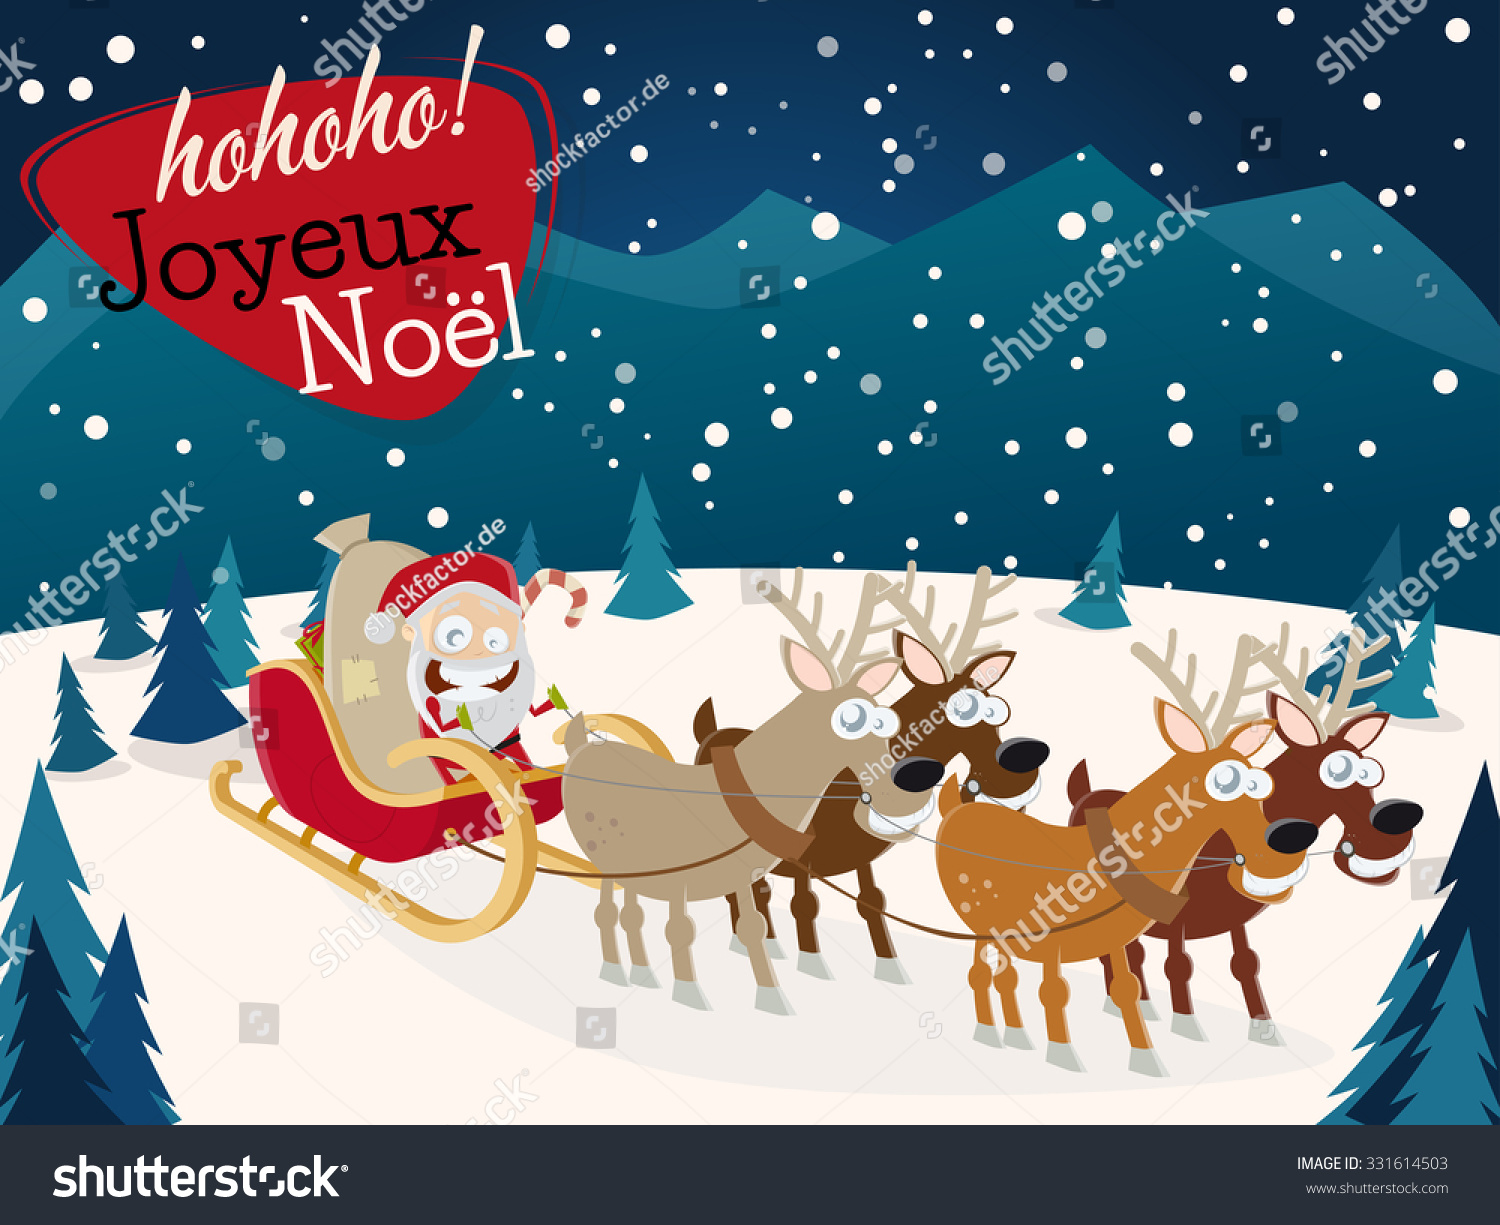 French christmas greetings joyeux noel santa stock vector hd french christmas greetings joyeux noel with santa claus and reindeers m4hsunfo Images